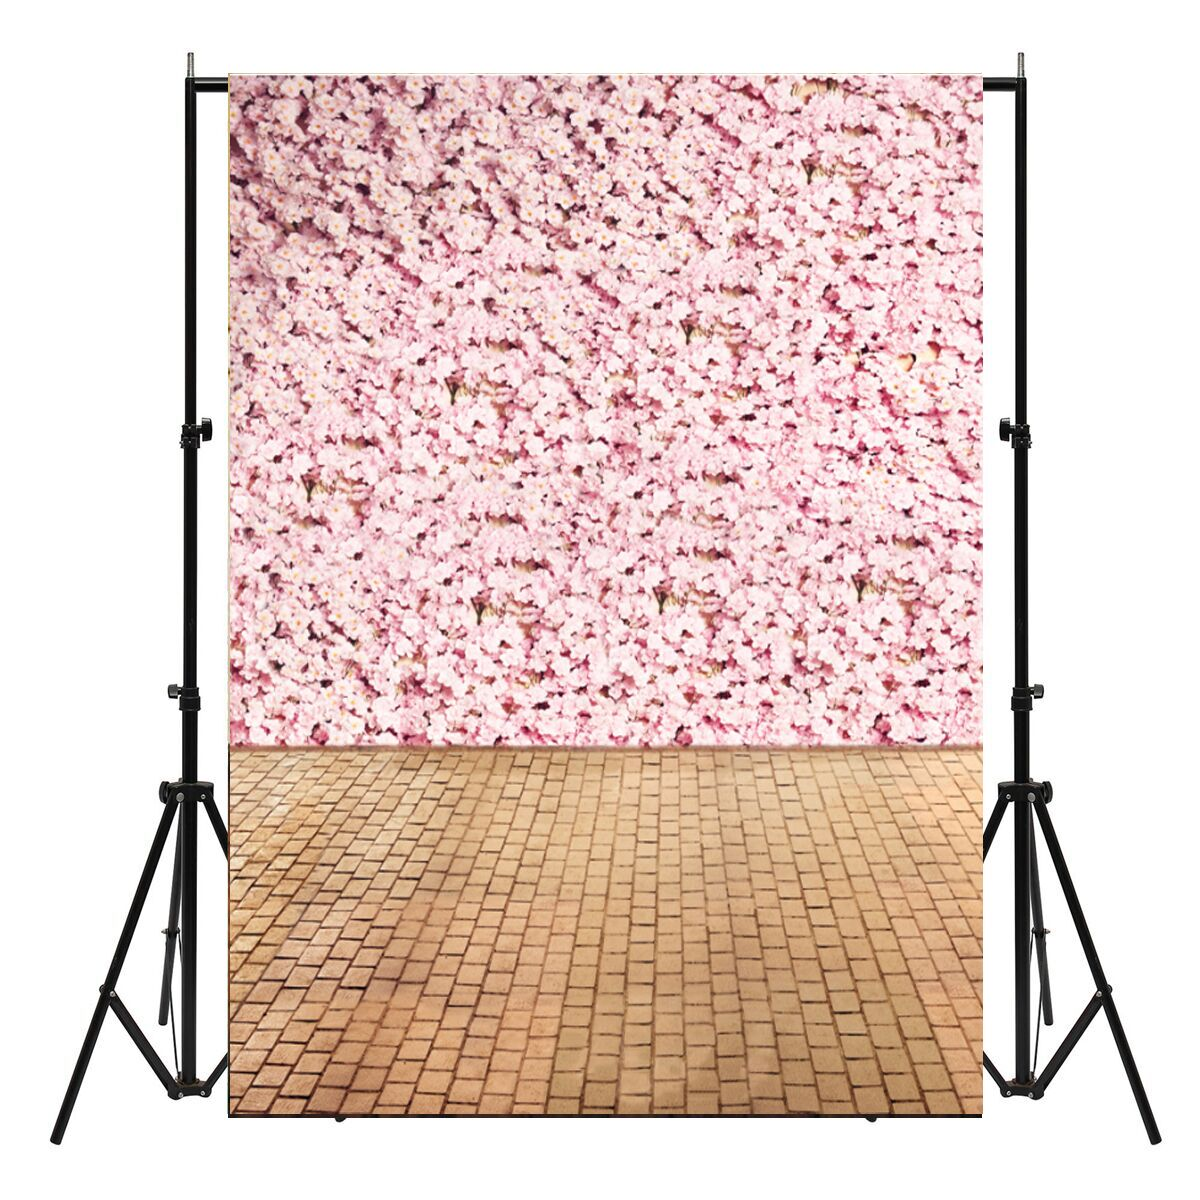 Vinyl Valentine's Day Pink Flowers Floor Photography Background Studio Photo Prop Backdrop